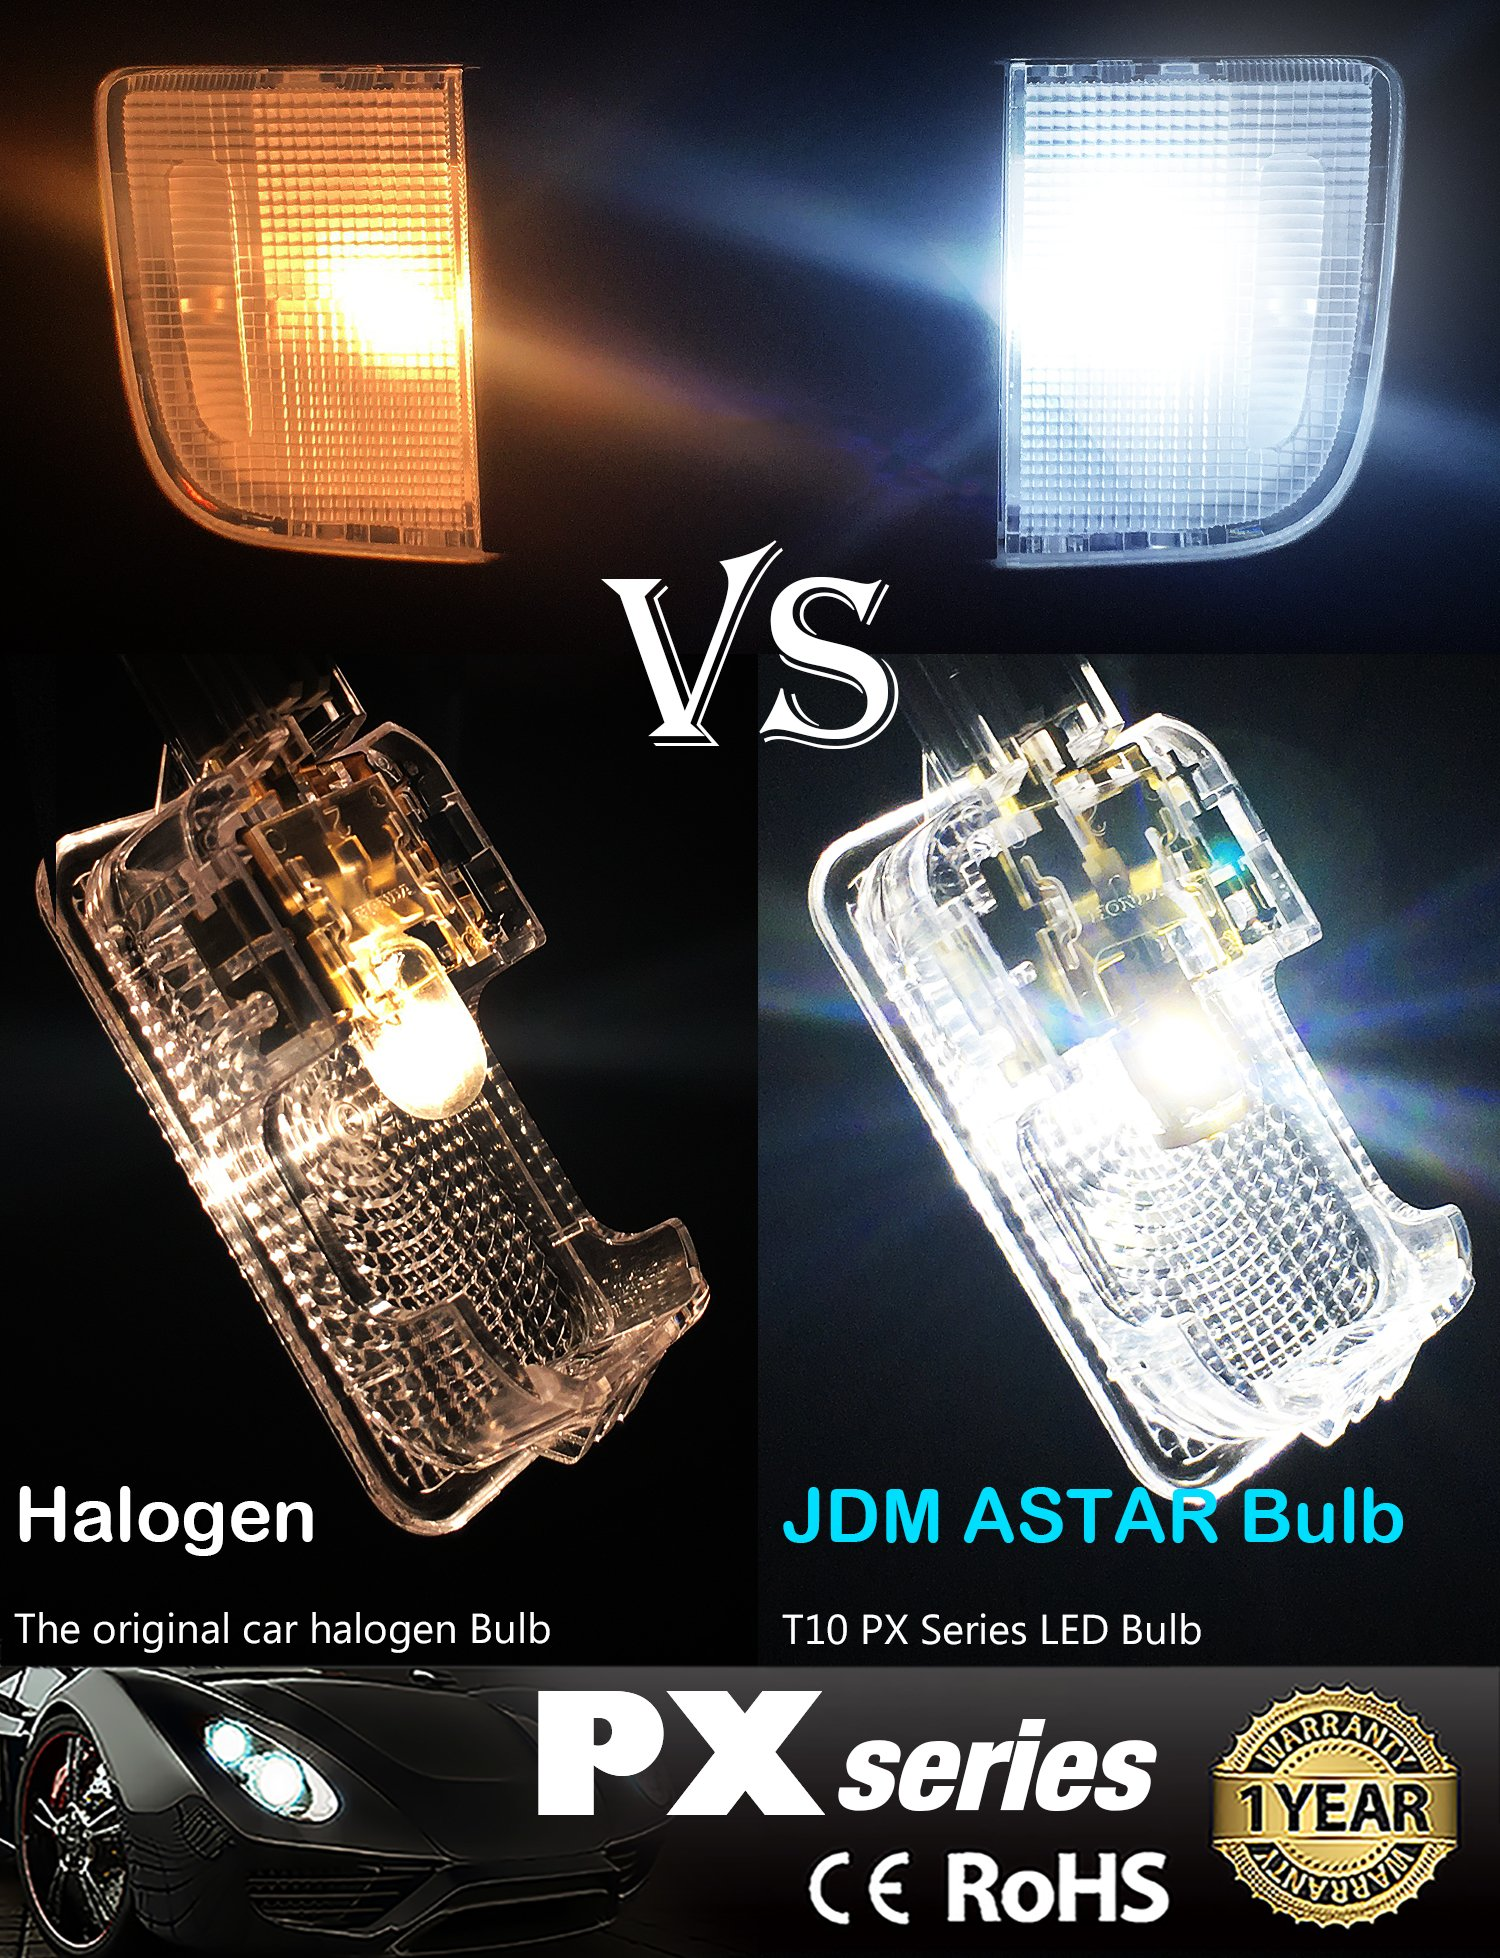 JDM ASTAR 10pcs Super Bright 194 168 175 2825 T10 PX Chipsets LED Bulbs,Xenon White (Best Value on the market) by JDM ASTAR (Image #2)